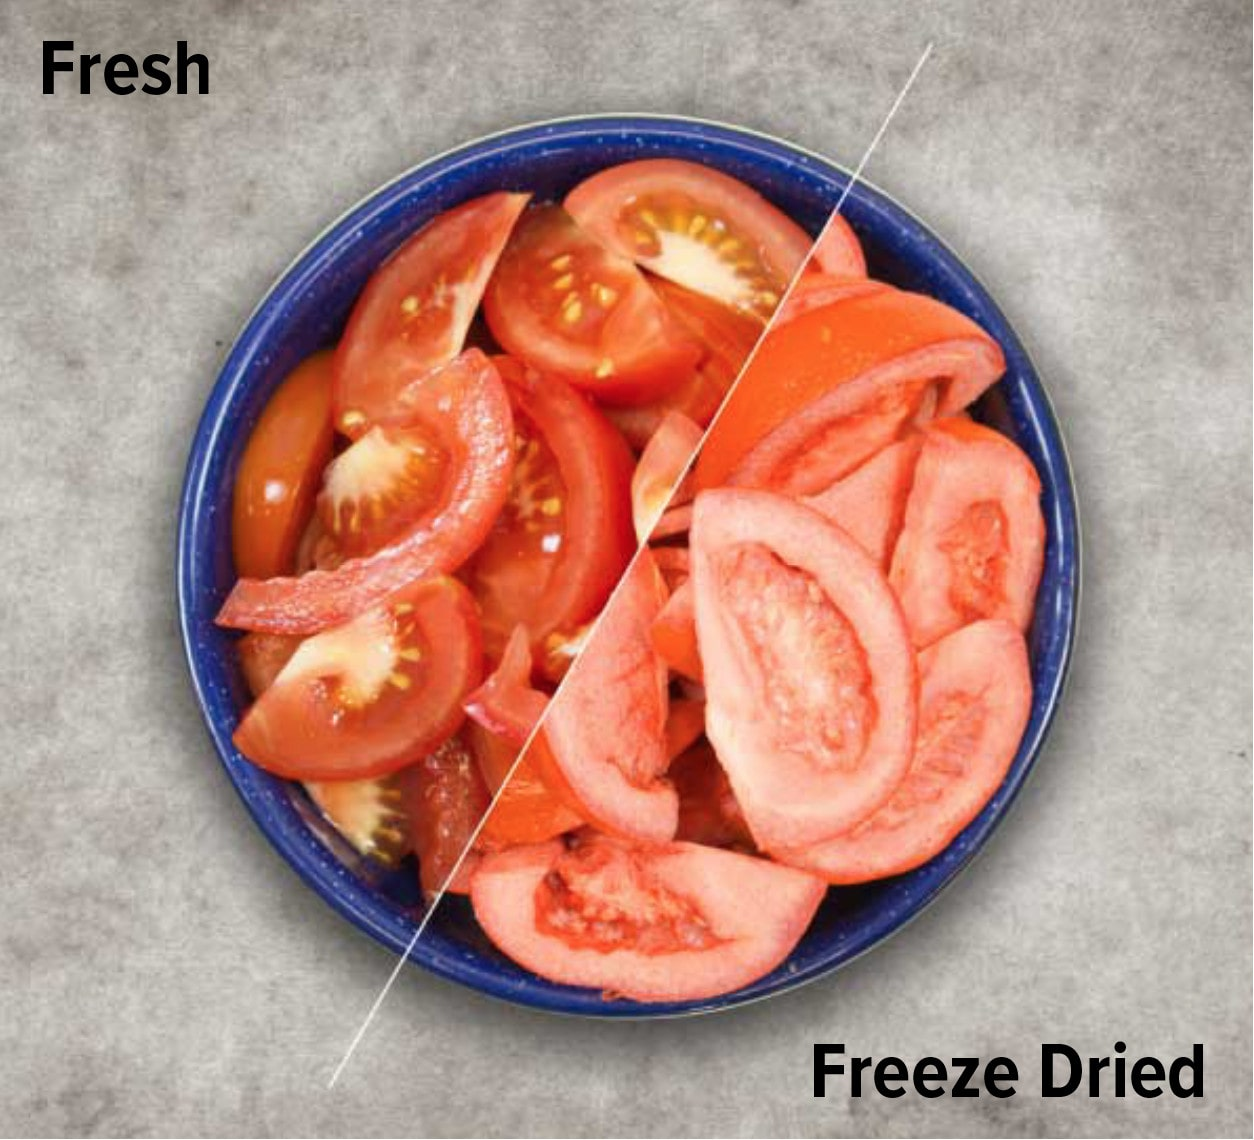 fresh tomatoes compared to Harvest Right freeze dried tomatoes